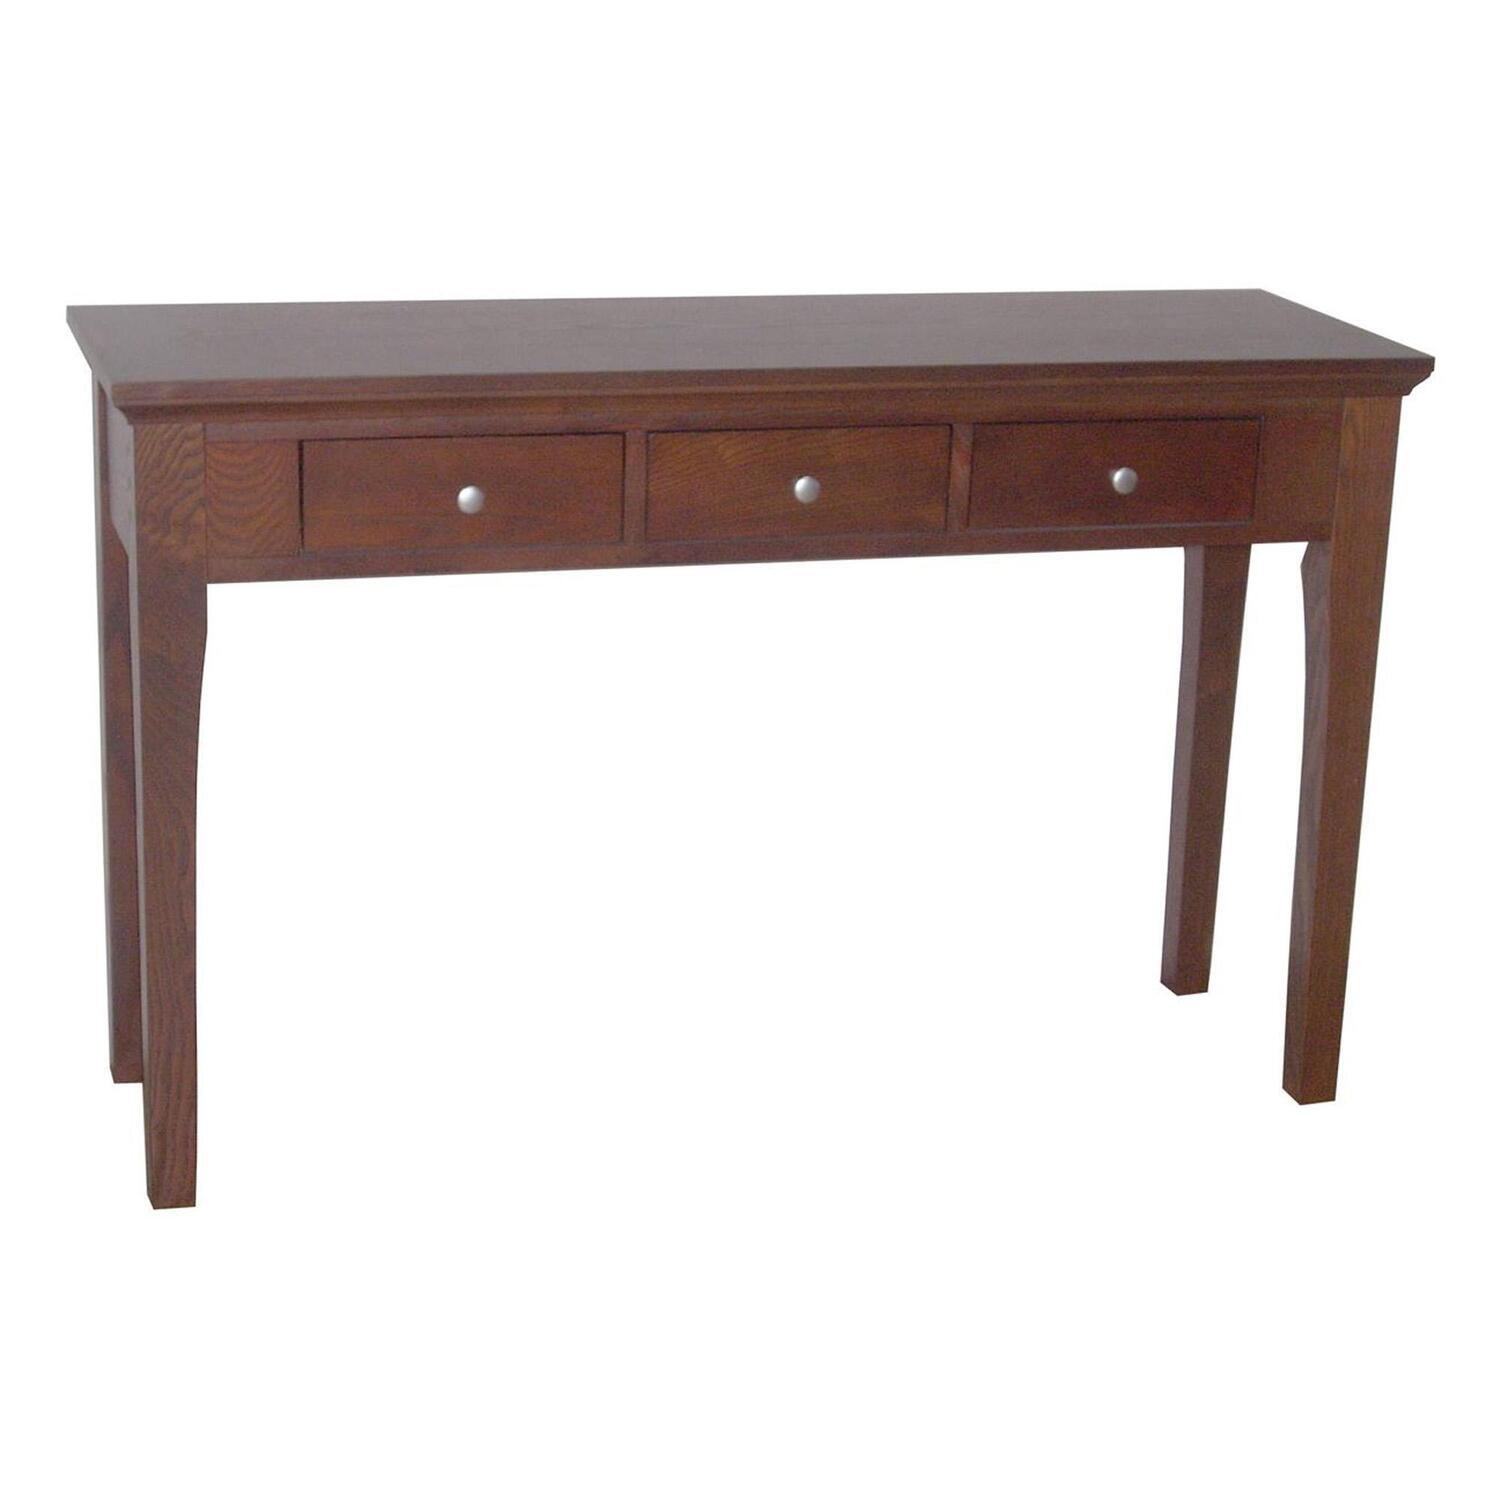 Console With Drawers 1000 43 Images About Sofa Table On Pinterest Federal